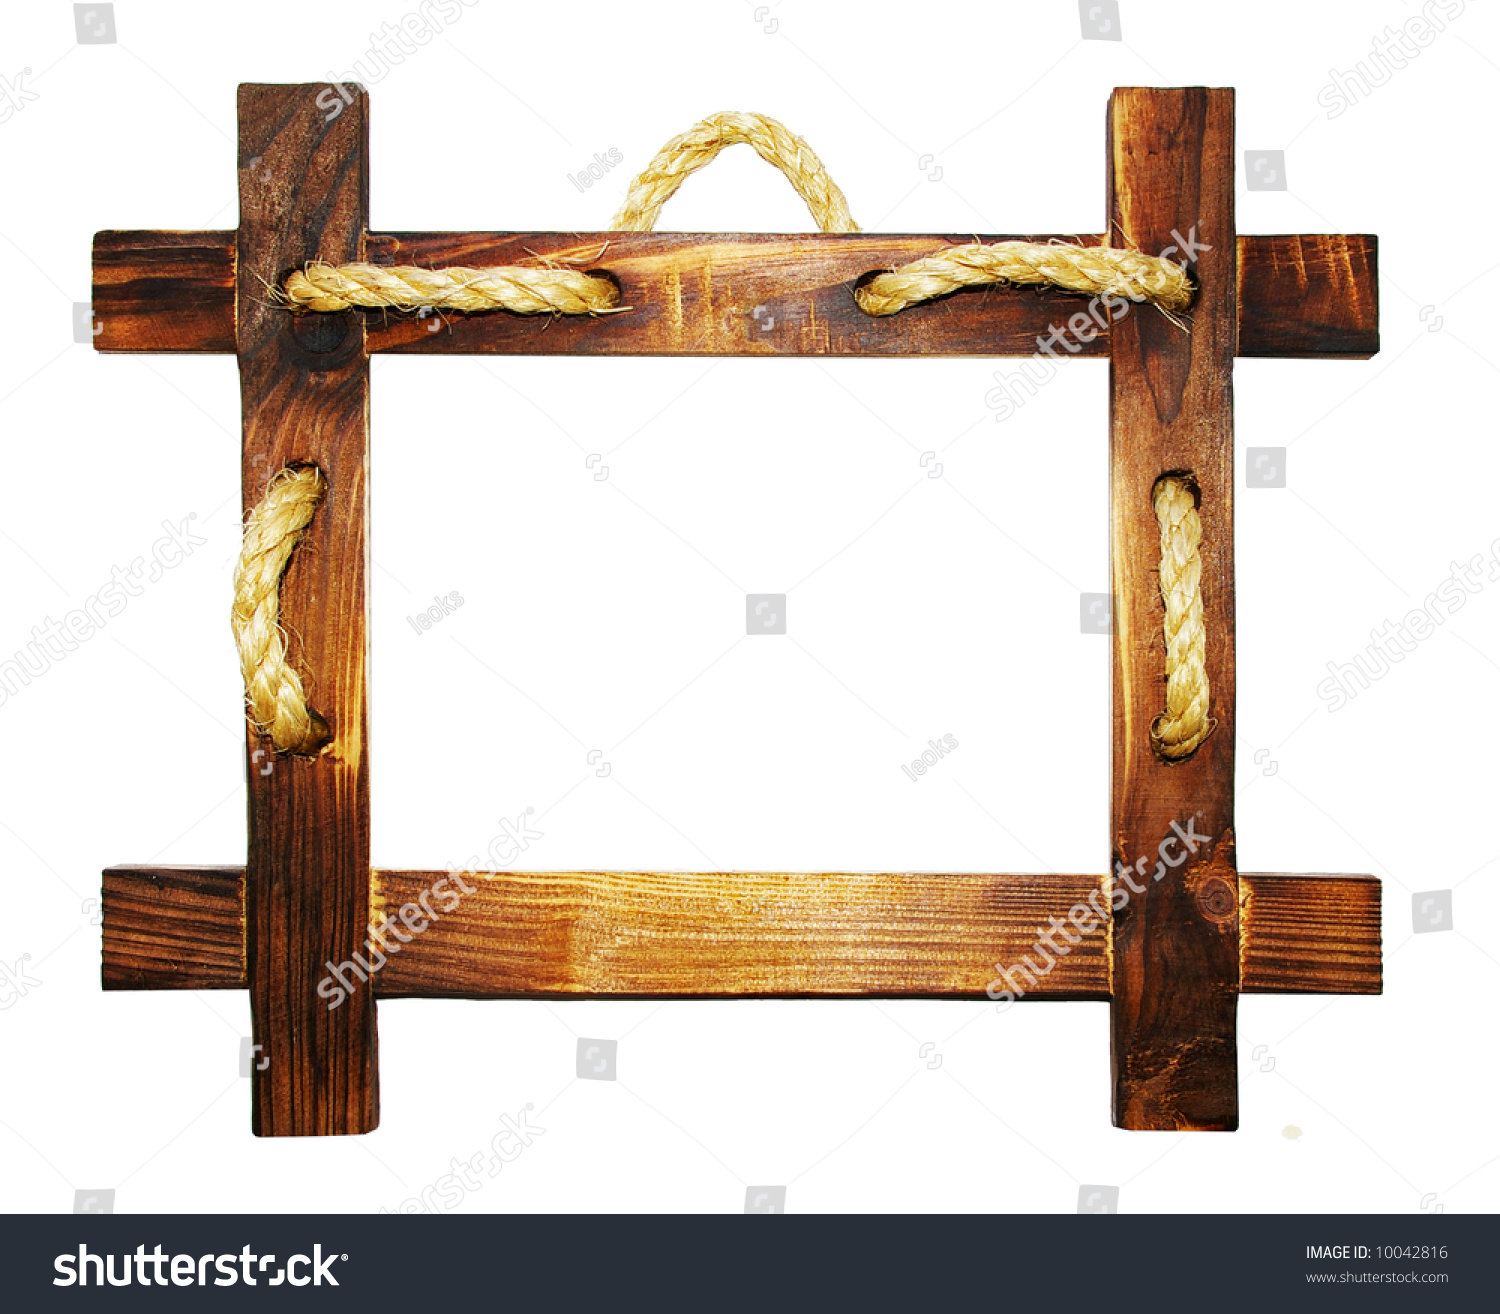 wooden frame with rope